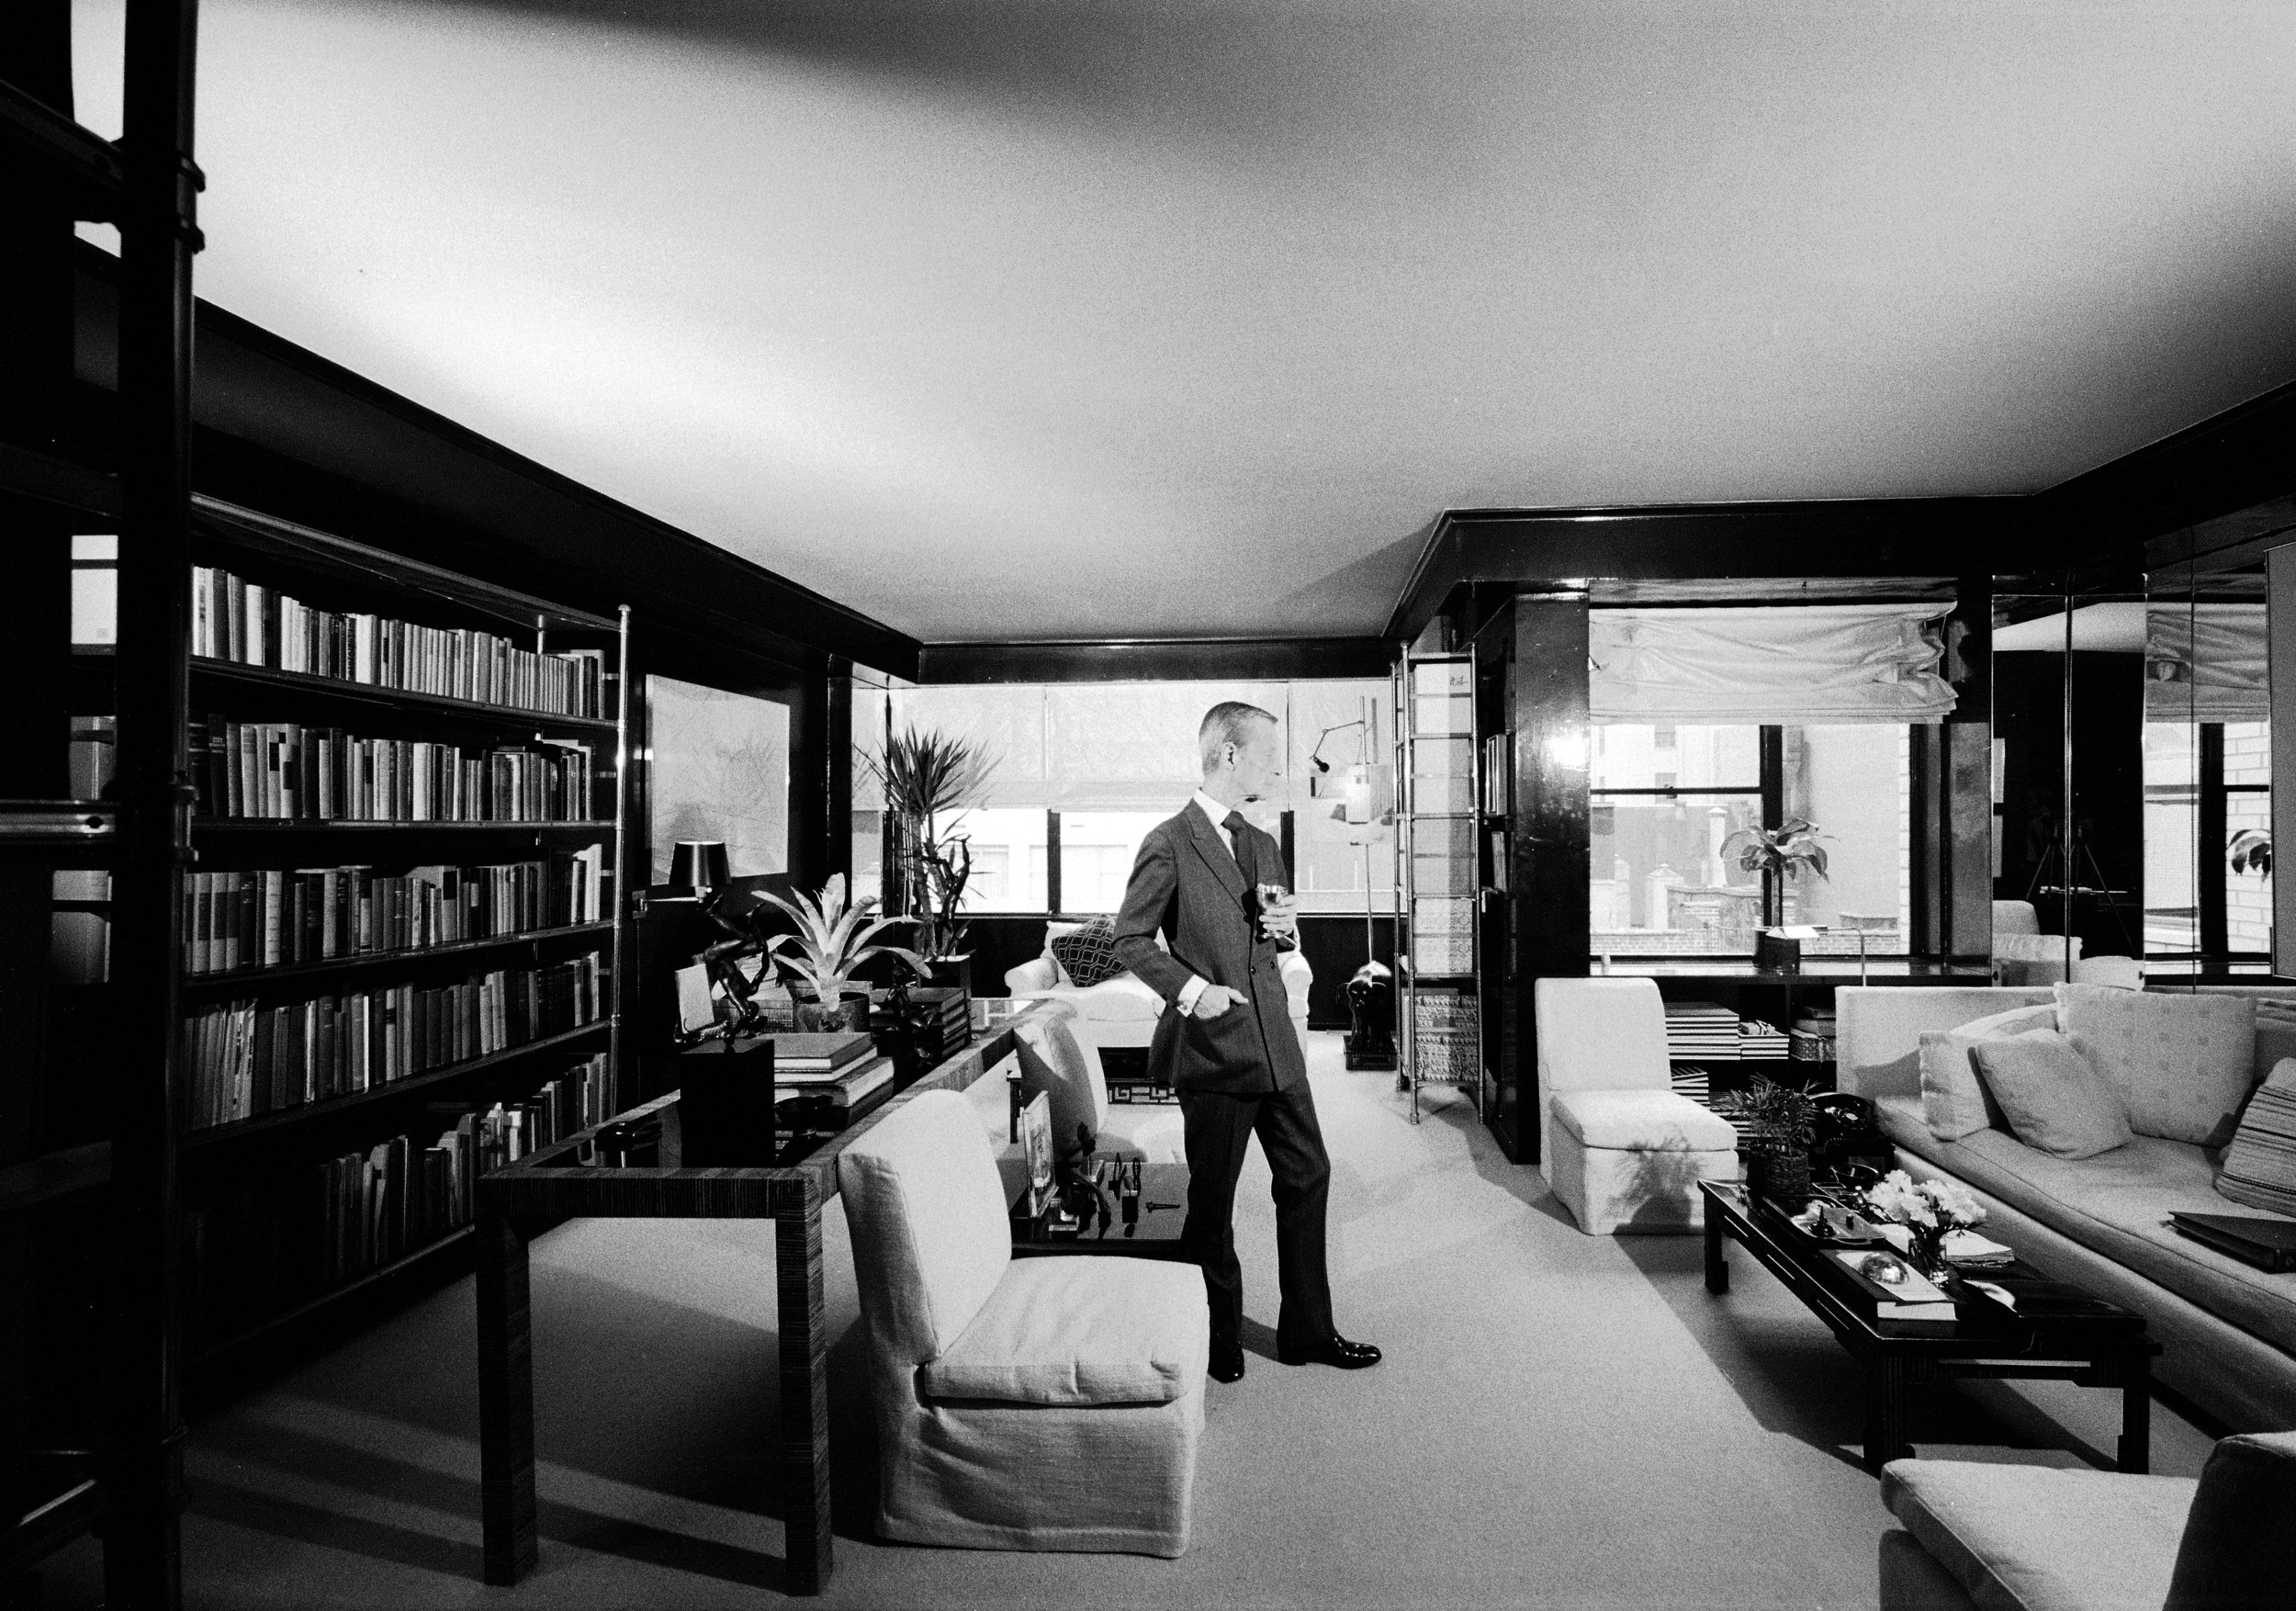 Interior decorator Billy Baldwin in his self designed apartment, circa 1974 (Photo by Alfred Eisenstaedt/The LIFE Picture Collection/Getty Images)